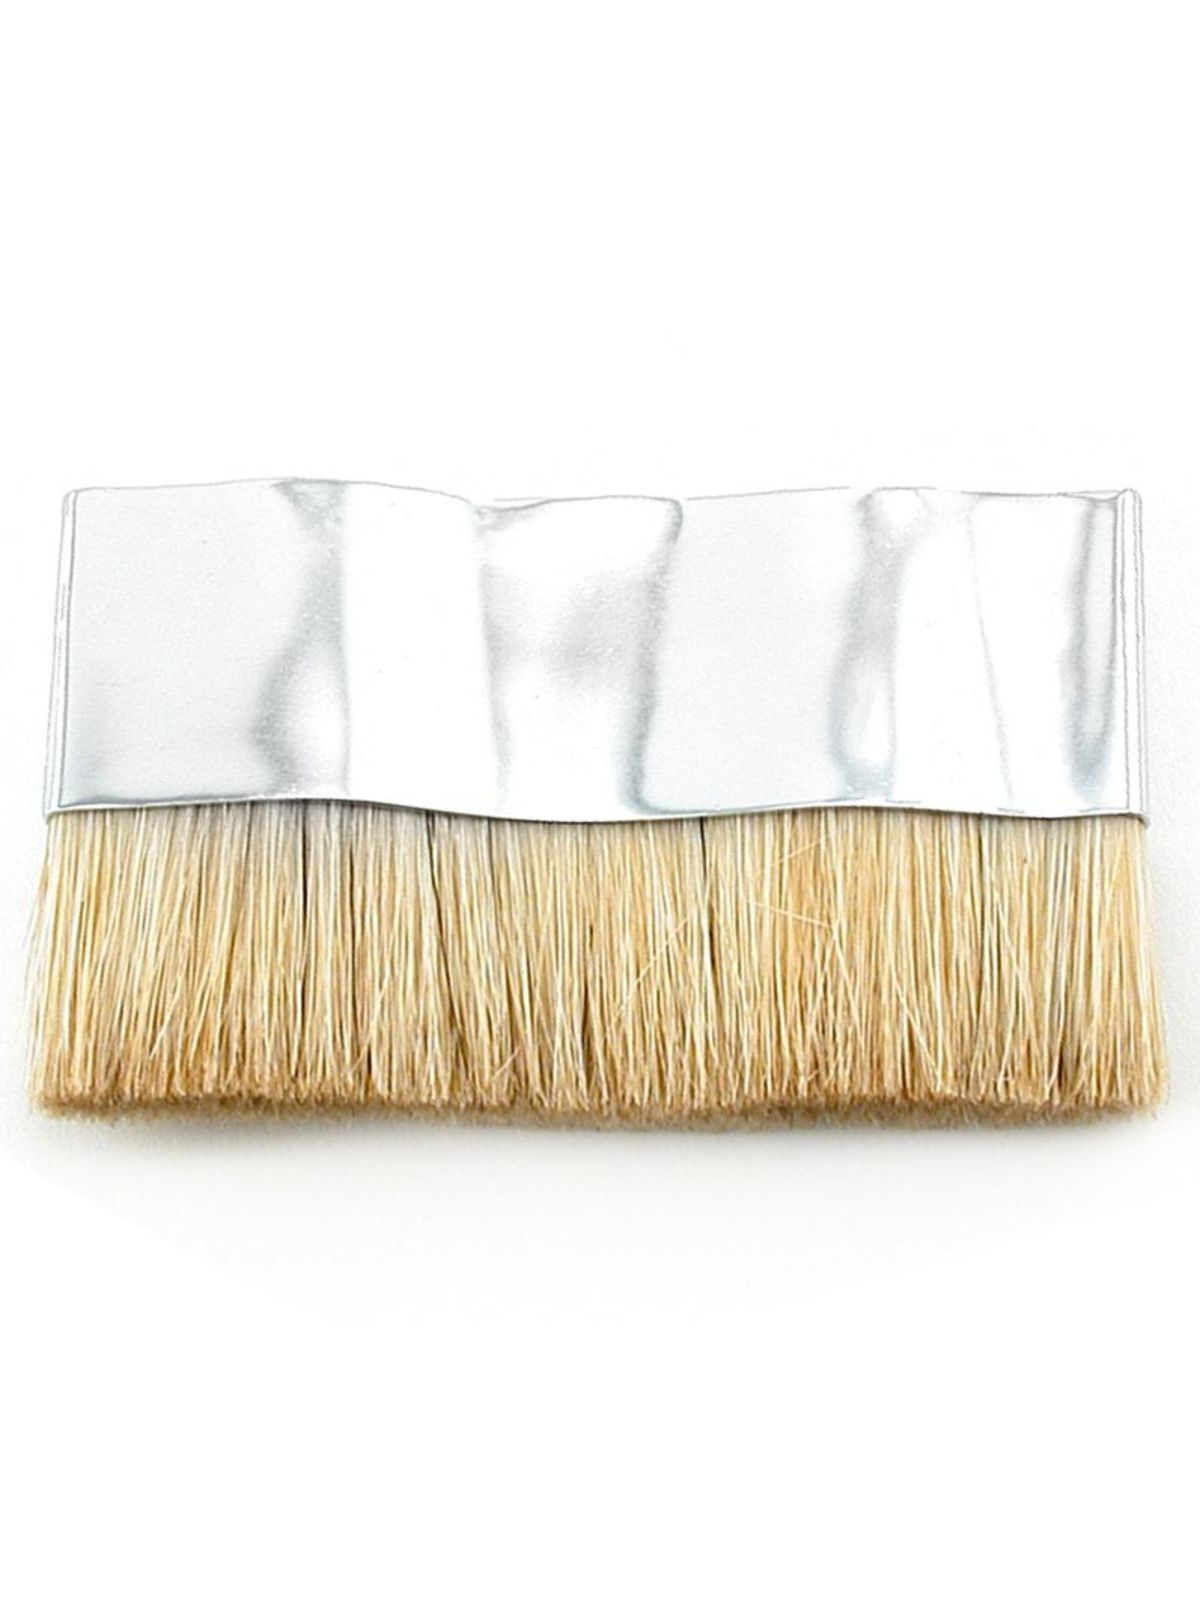 Wavy Stippler Brush